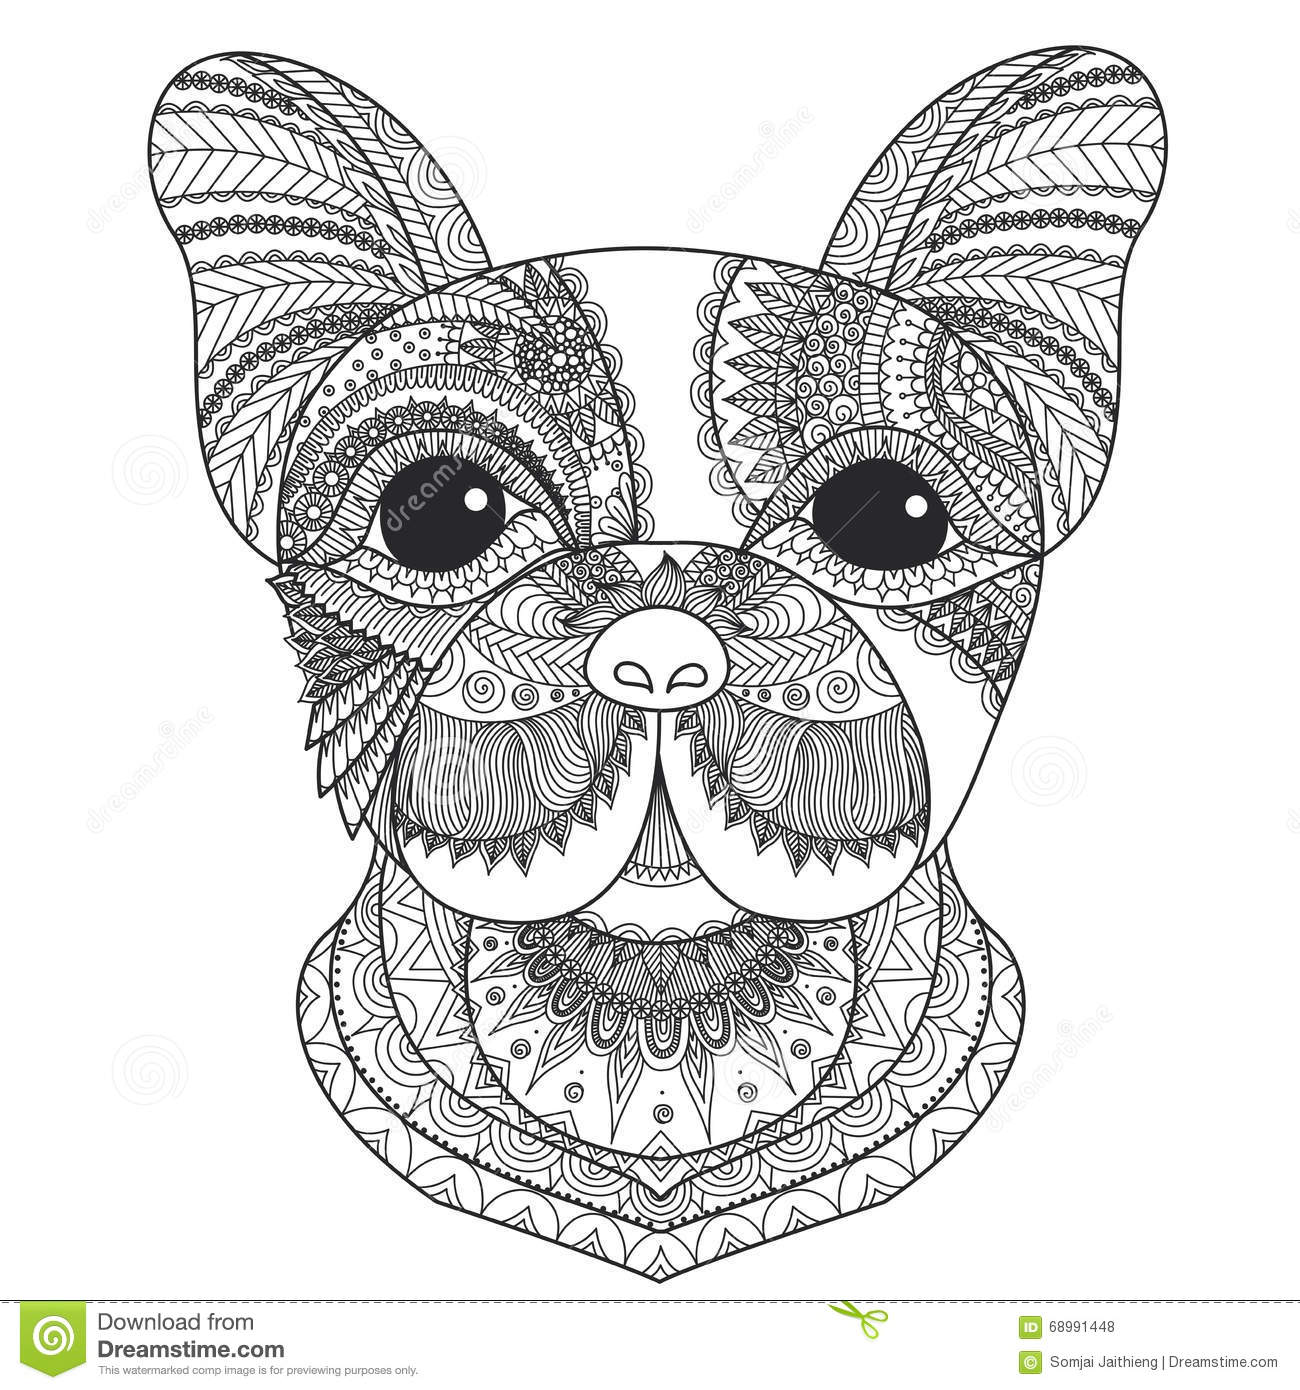 French Bulldog Puppy Zentangle Stylized For Coloring Book Adult Tattoo T Shirt Design And Other Decorations